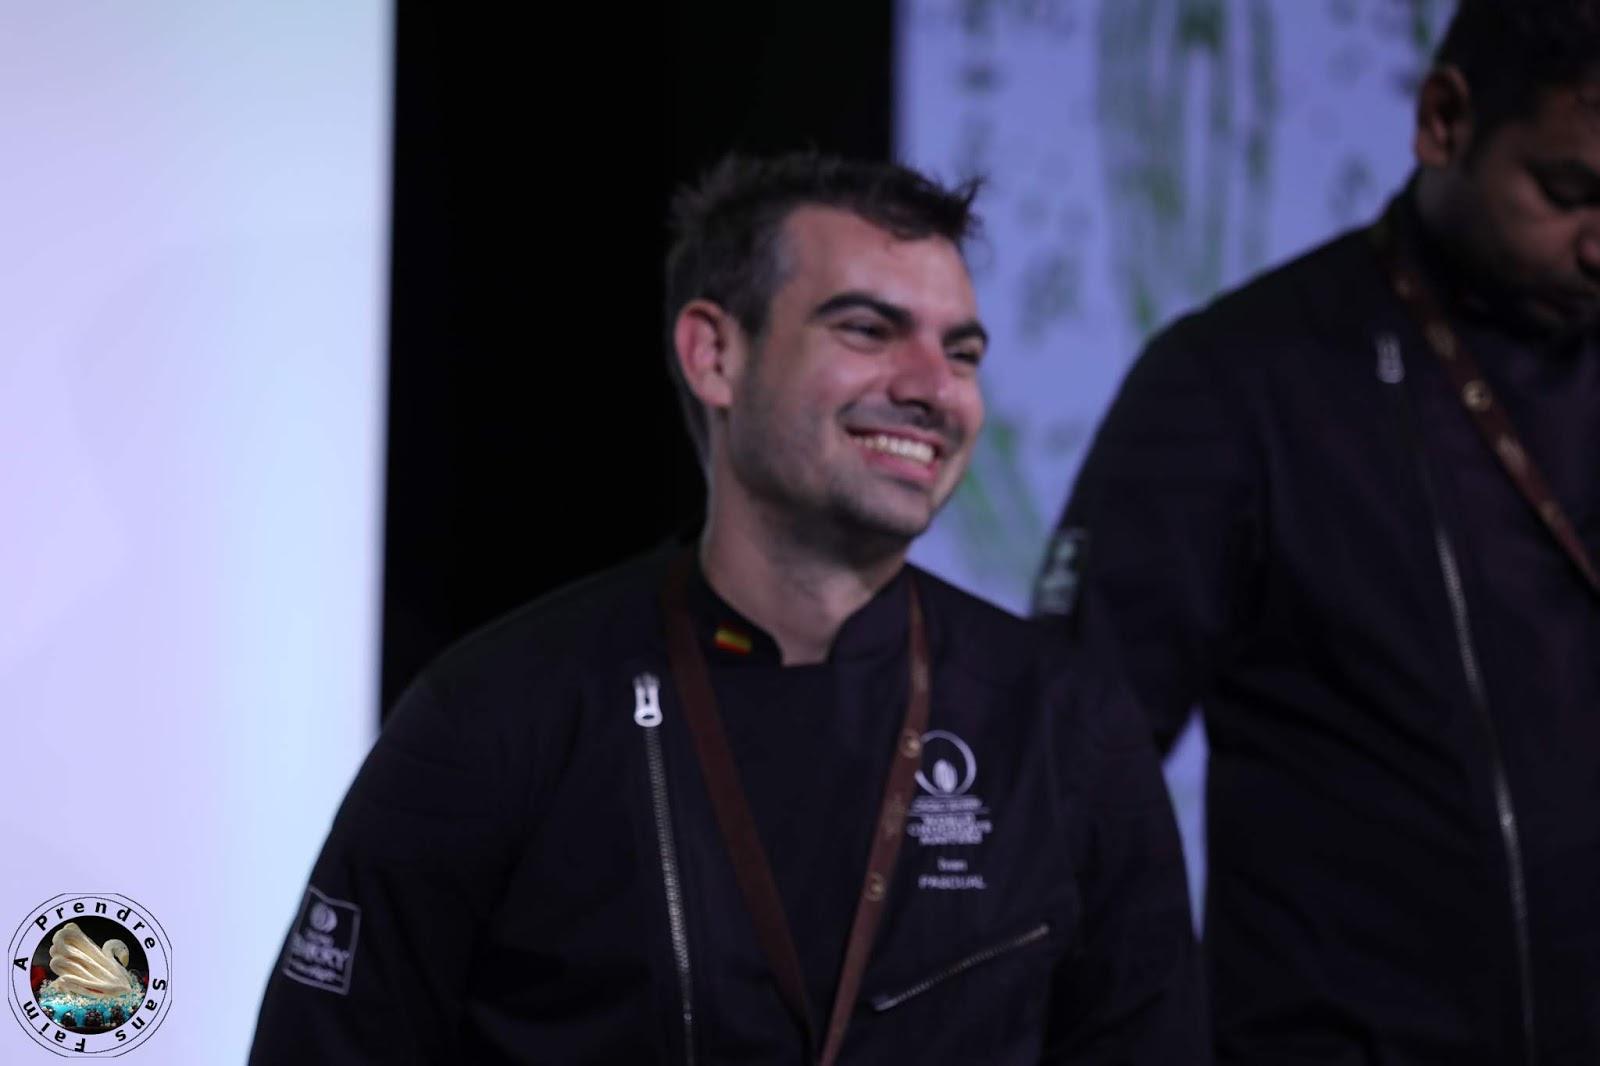 World Chocolate Masters au Salon du Chocolat 2018 : candidats et créations